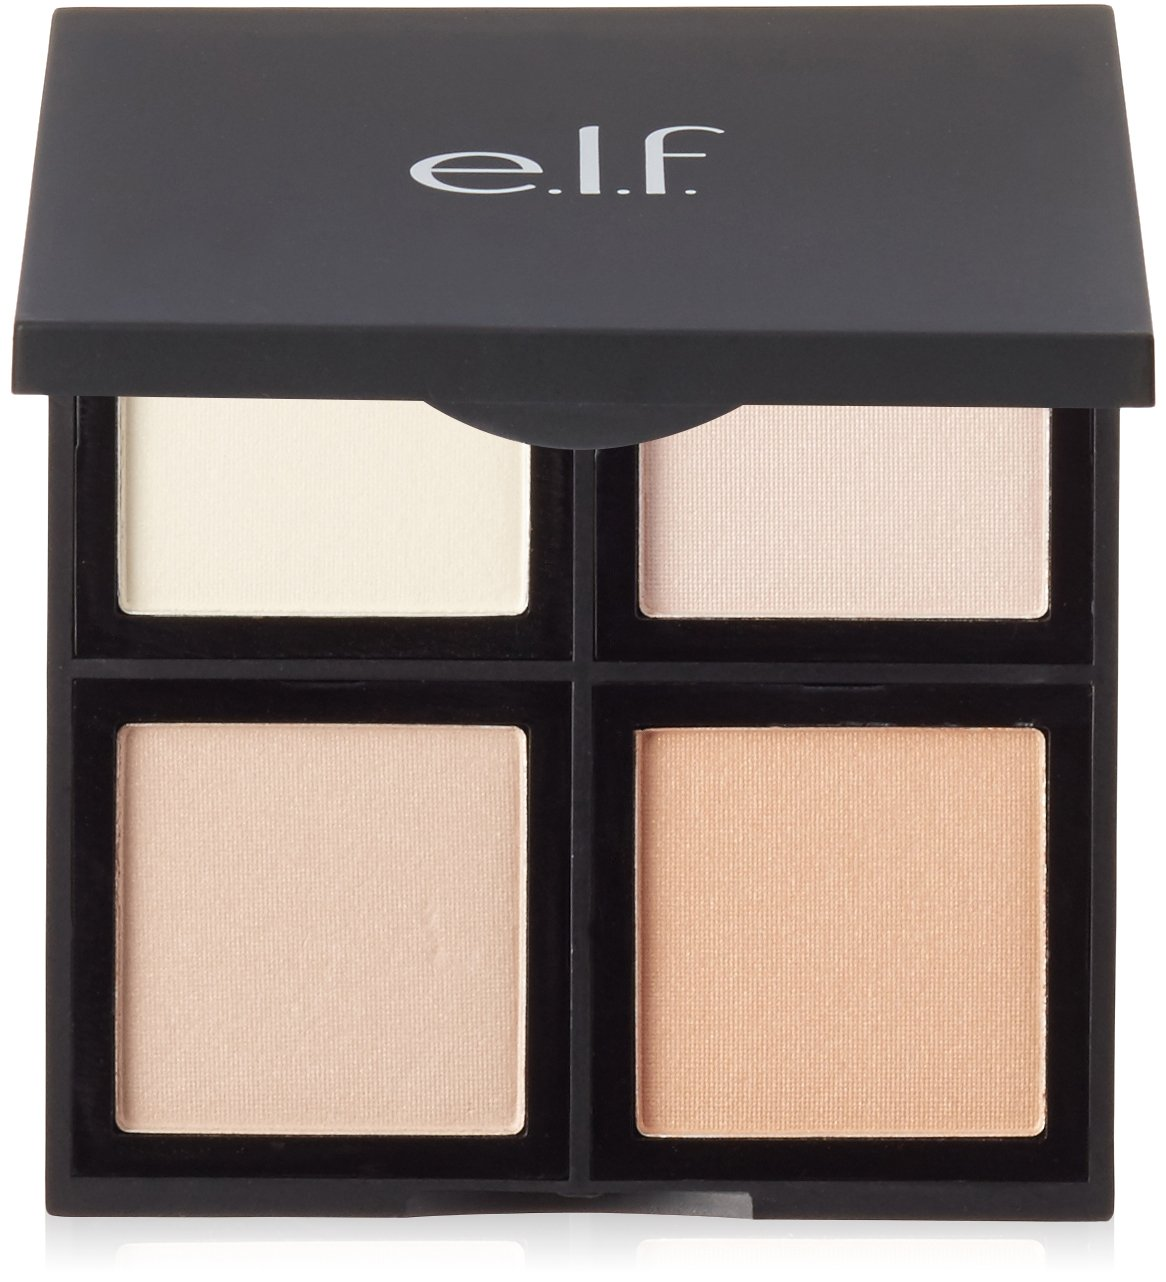 e.l.f. Illuminating Palette, 0.48 Ounce JA Cosmetics